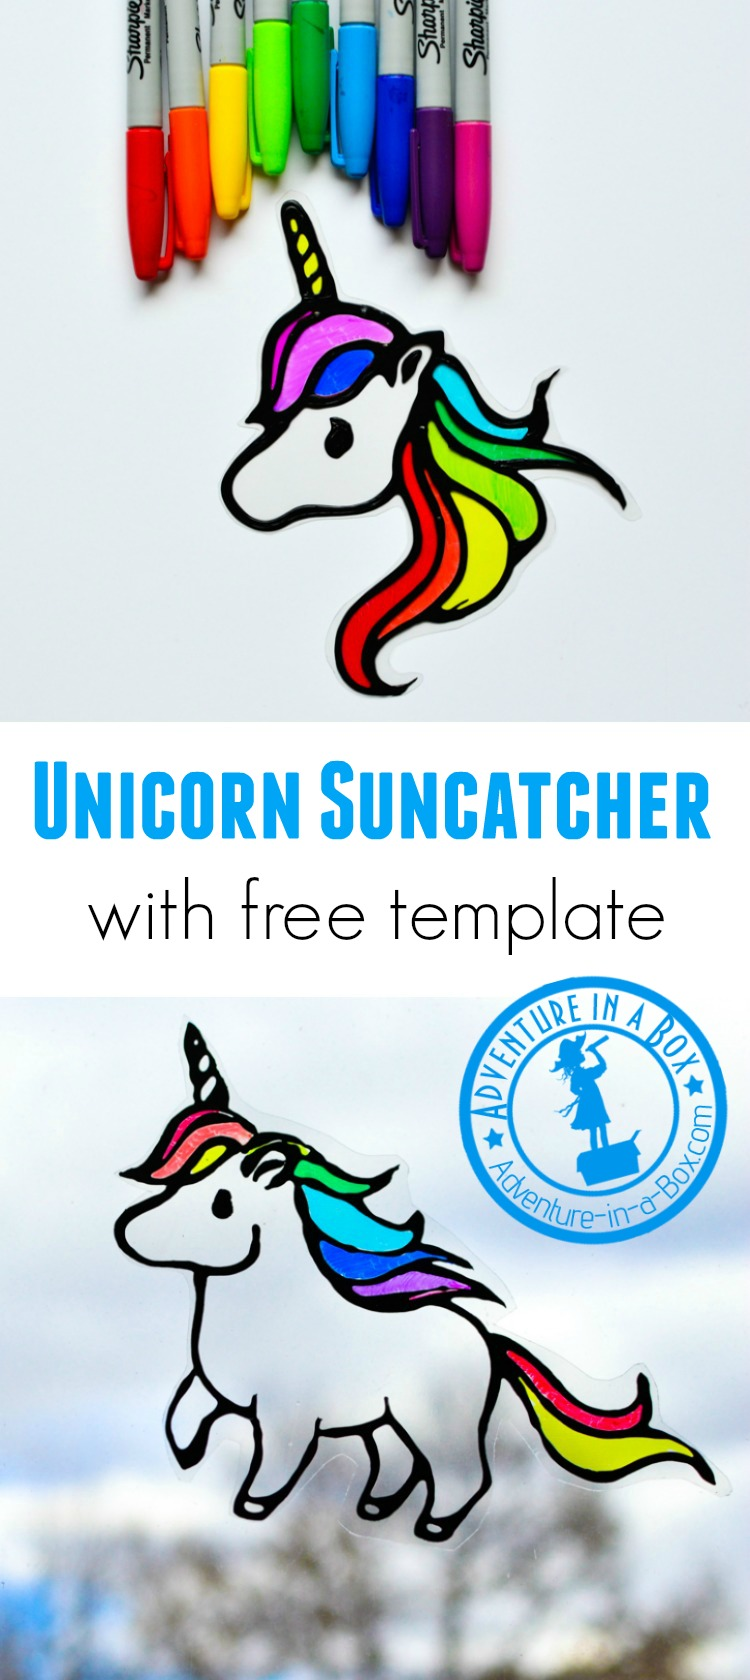 Make stained glass rainbow unicorn suncatchers with kids! This craft comes with two free printable templates and makes for a quick and easy way to decorate windows. #unicorn #kidscrafts #drawing #upcycling